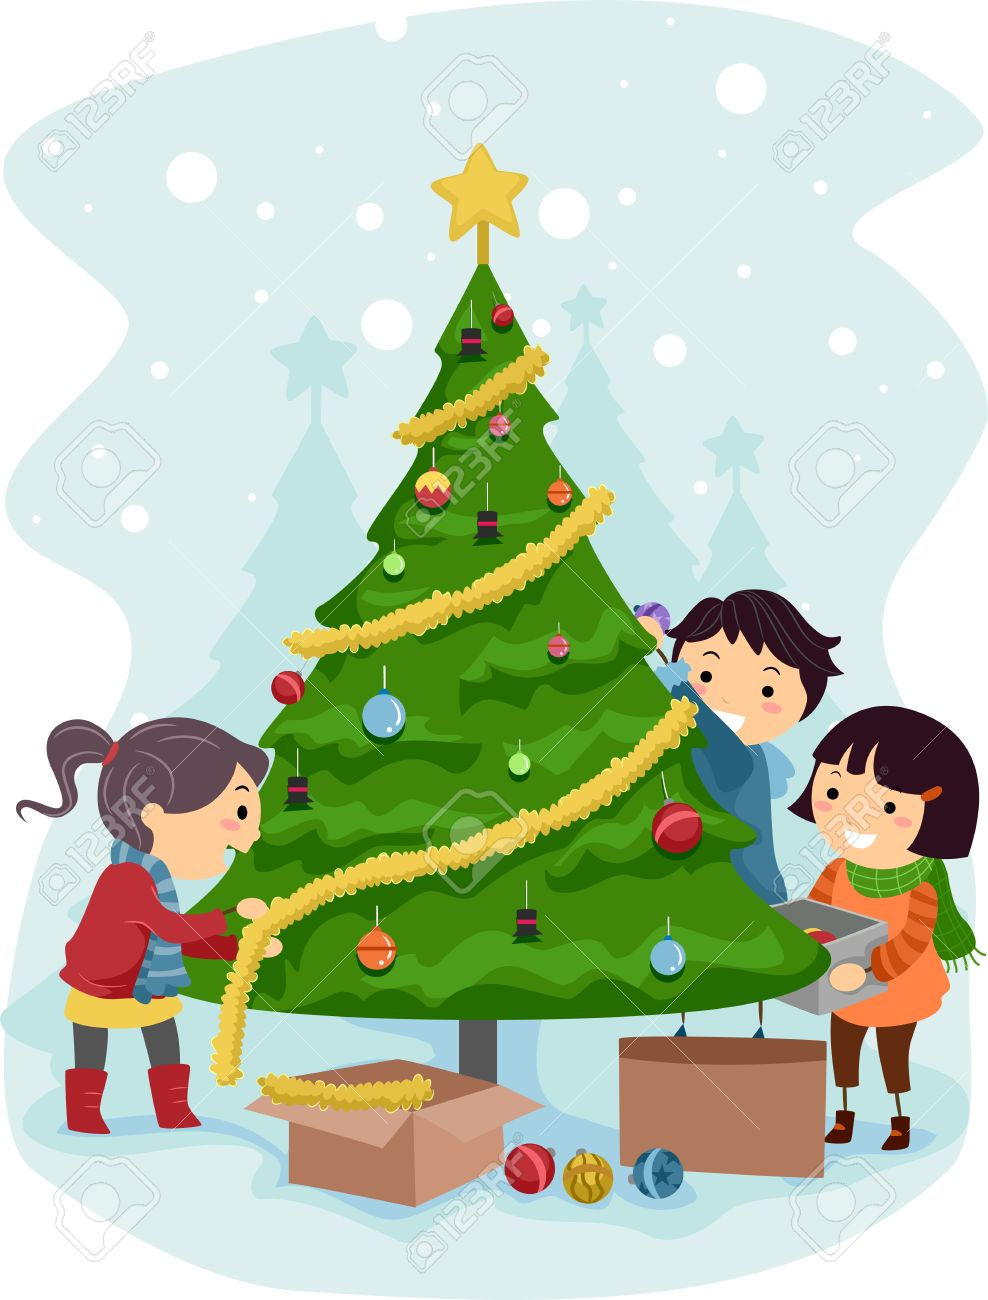 Illustration Of Kids Decorating A Christmas Tree Stock Photo Picture And Royalty Free Image Image 11467622 No, kids it' not just easier to pop in the dvd and watch it whenever you want. illustration of kids decorating a christmas tree